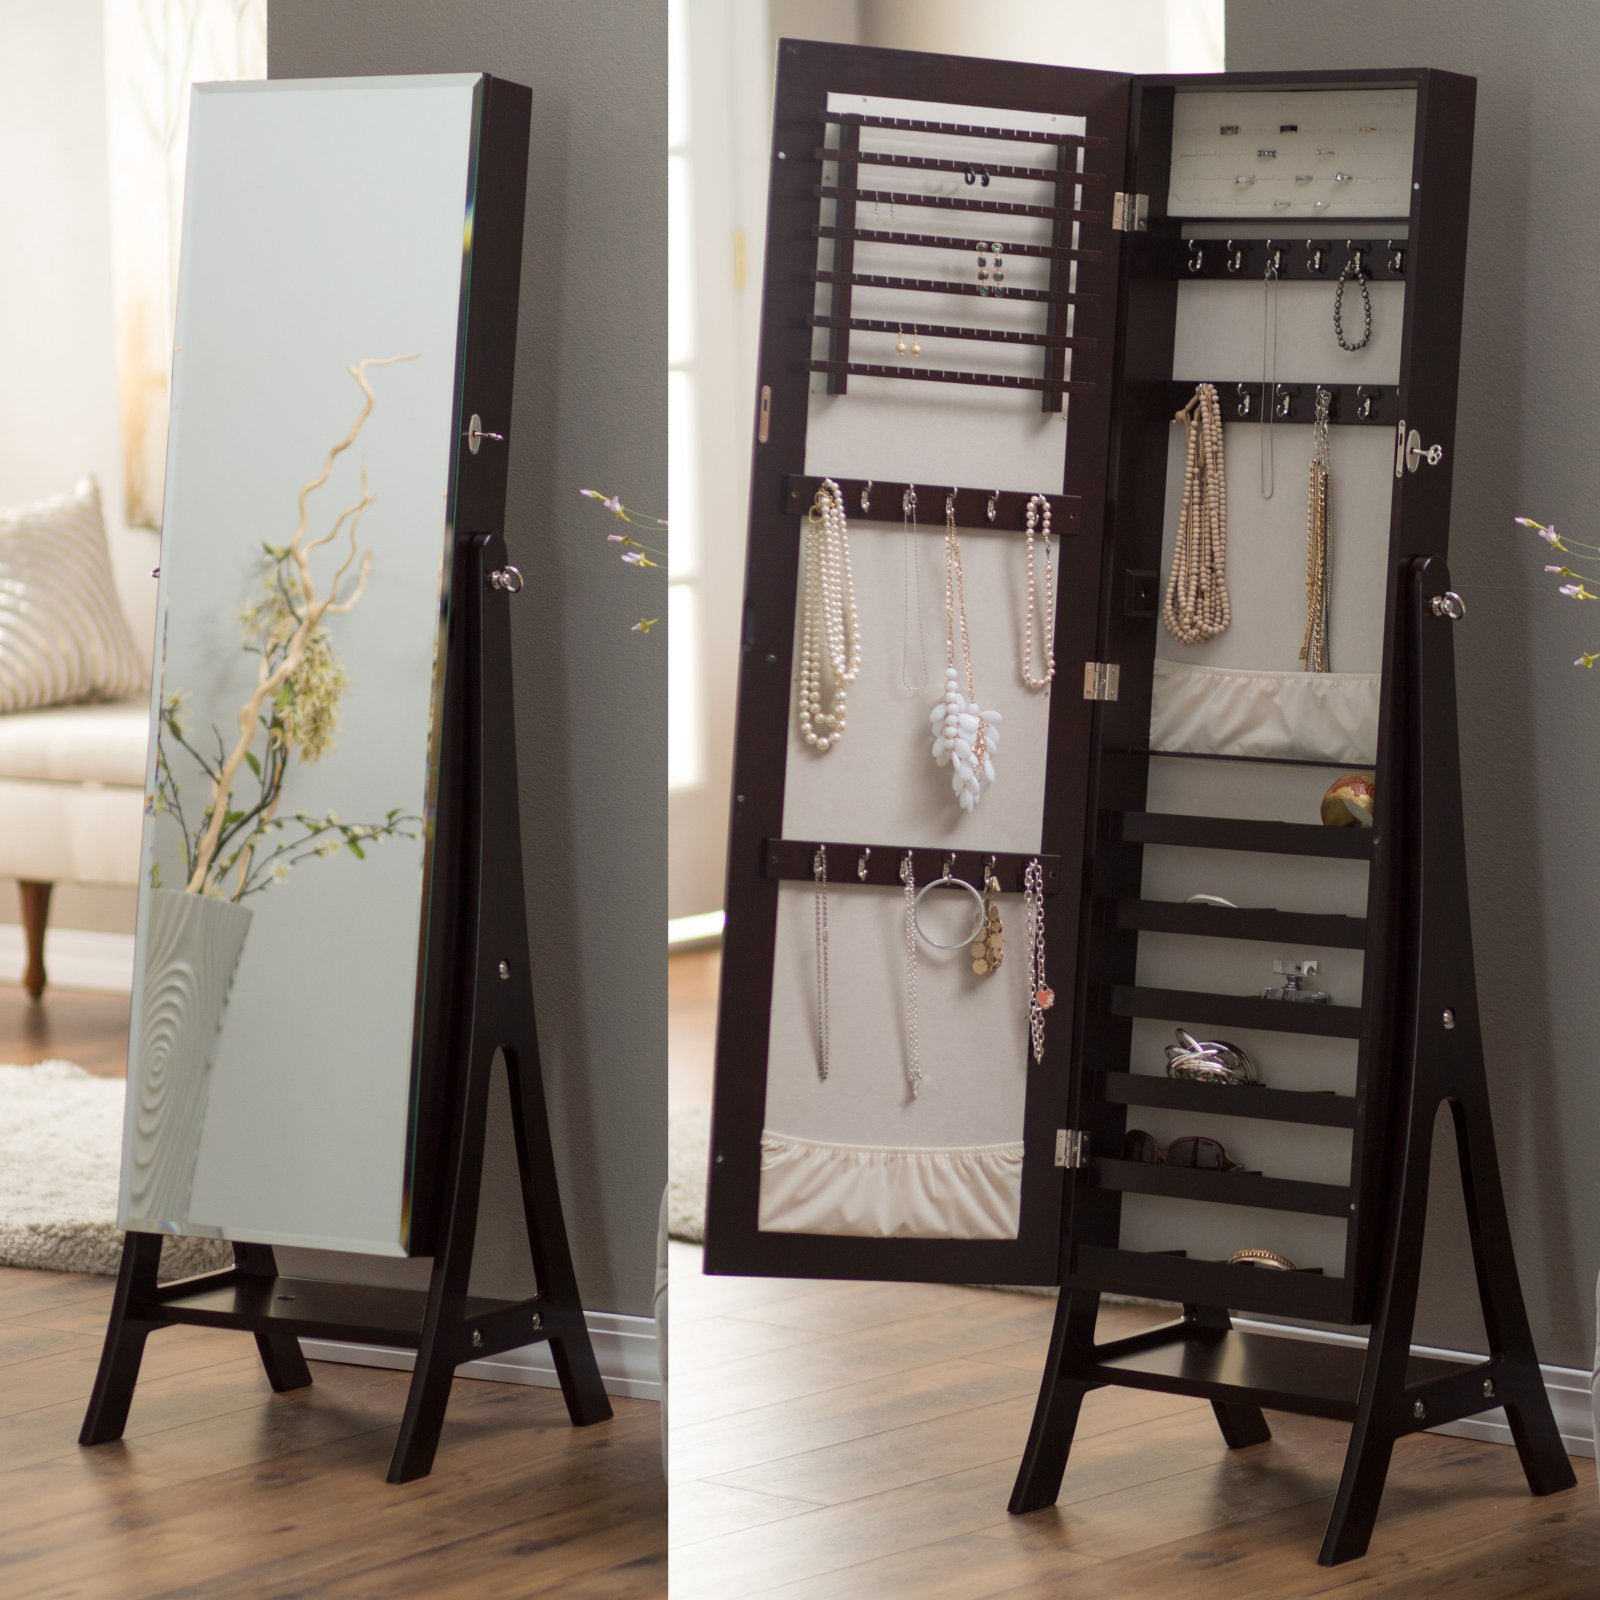 JEWELRY ARMOIRE SALE: Save up to 50% off Cheval and Freestanding Jewelry Armoires